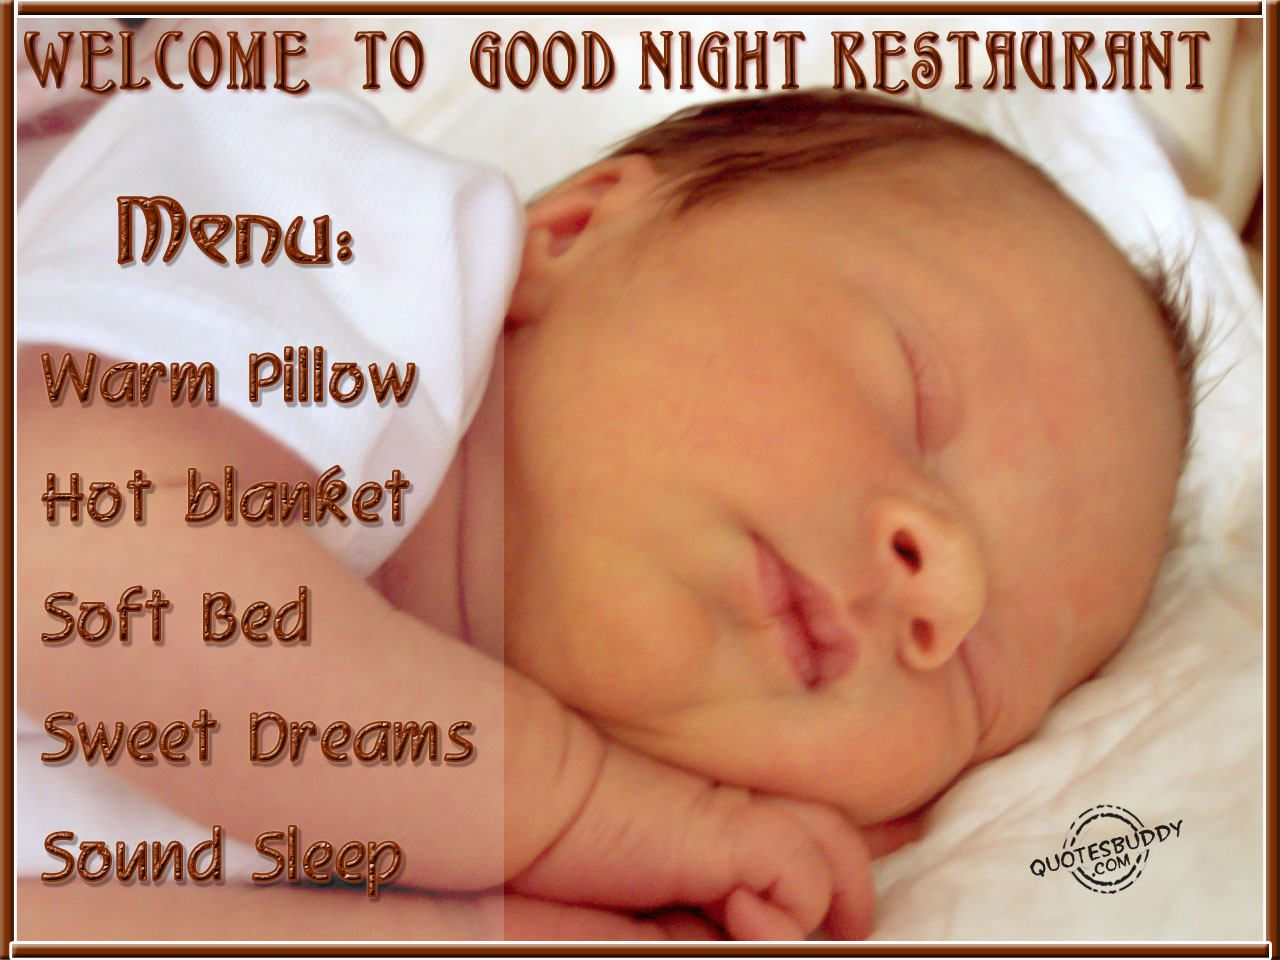 Good Night Quotes Wel e To Good Night Restaurant Menu Warm Pillow Hot blanket Soft Bed Sweet Dreams Sound Sleep